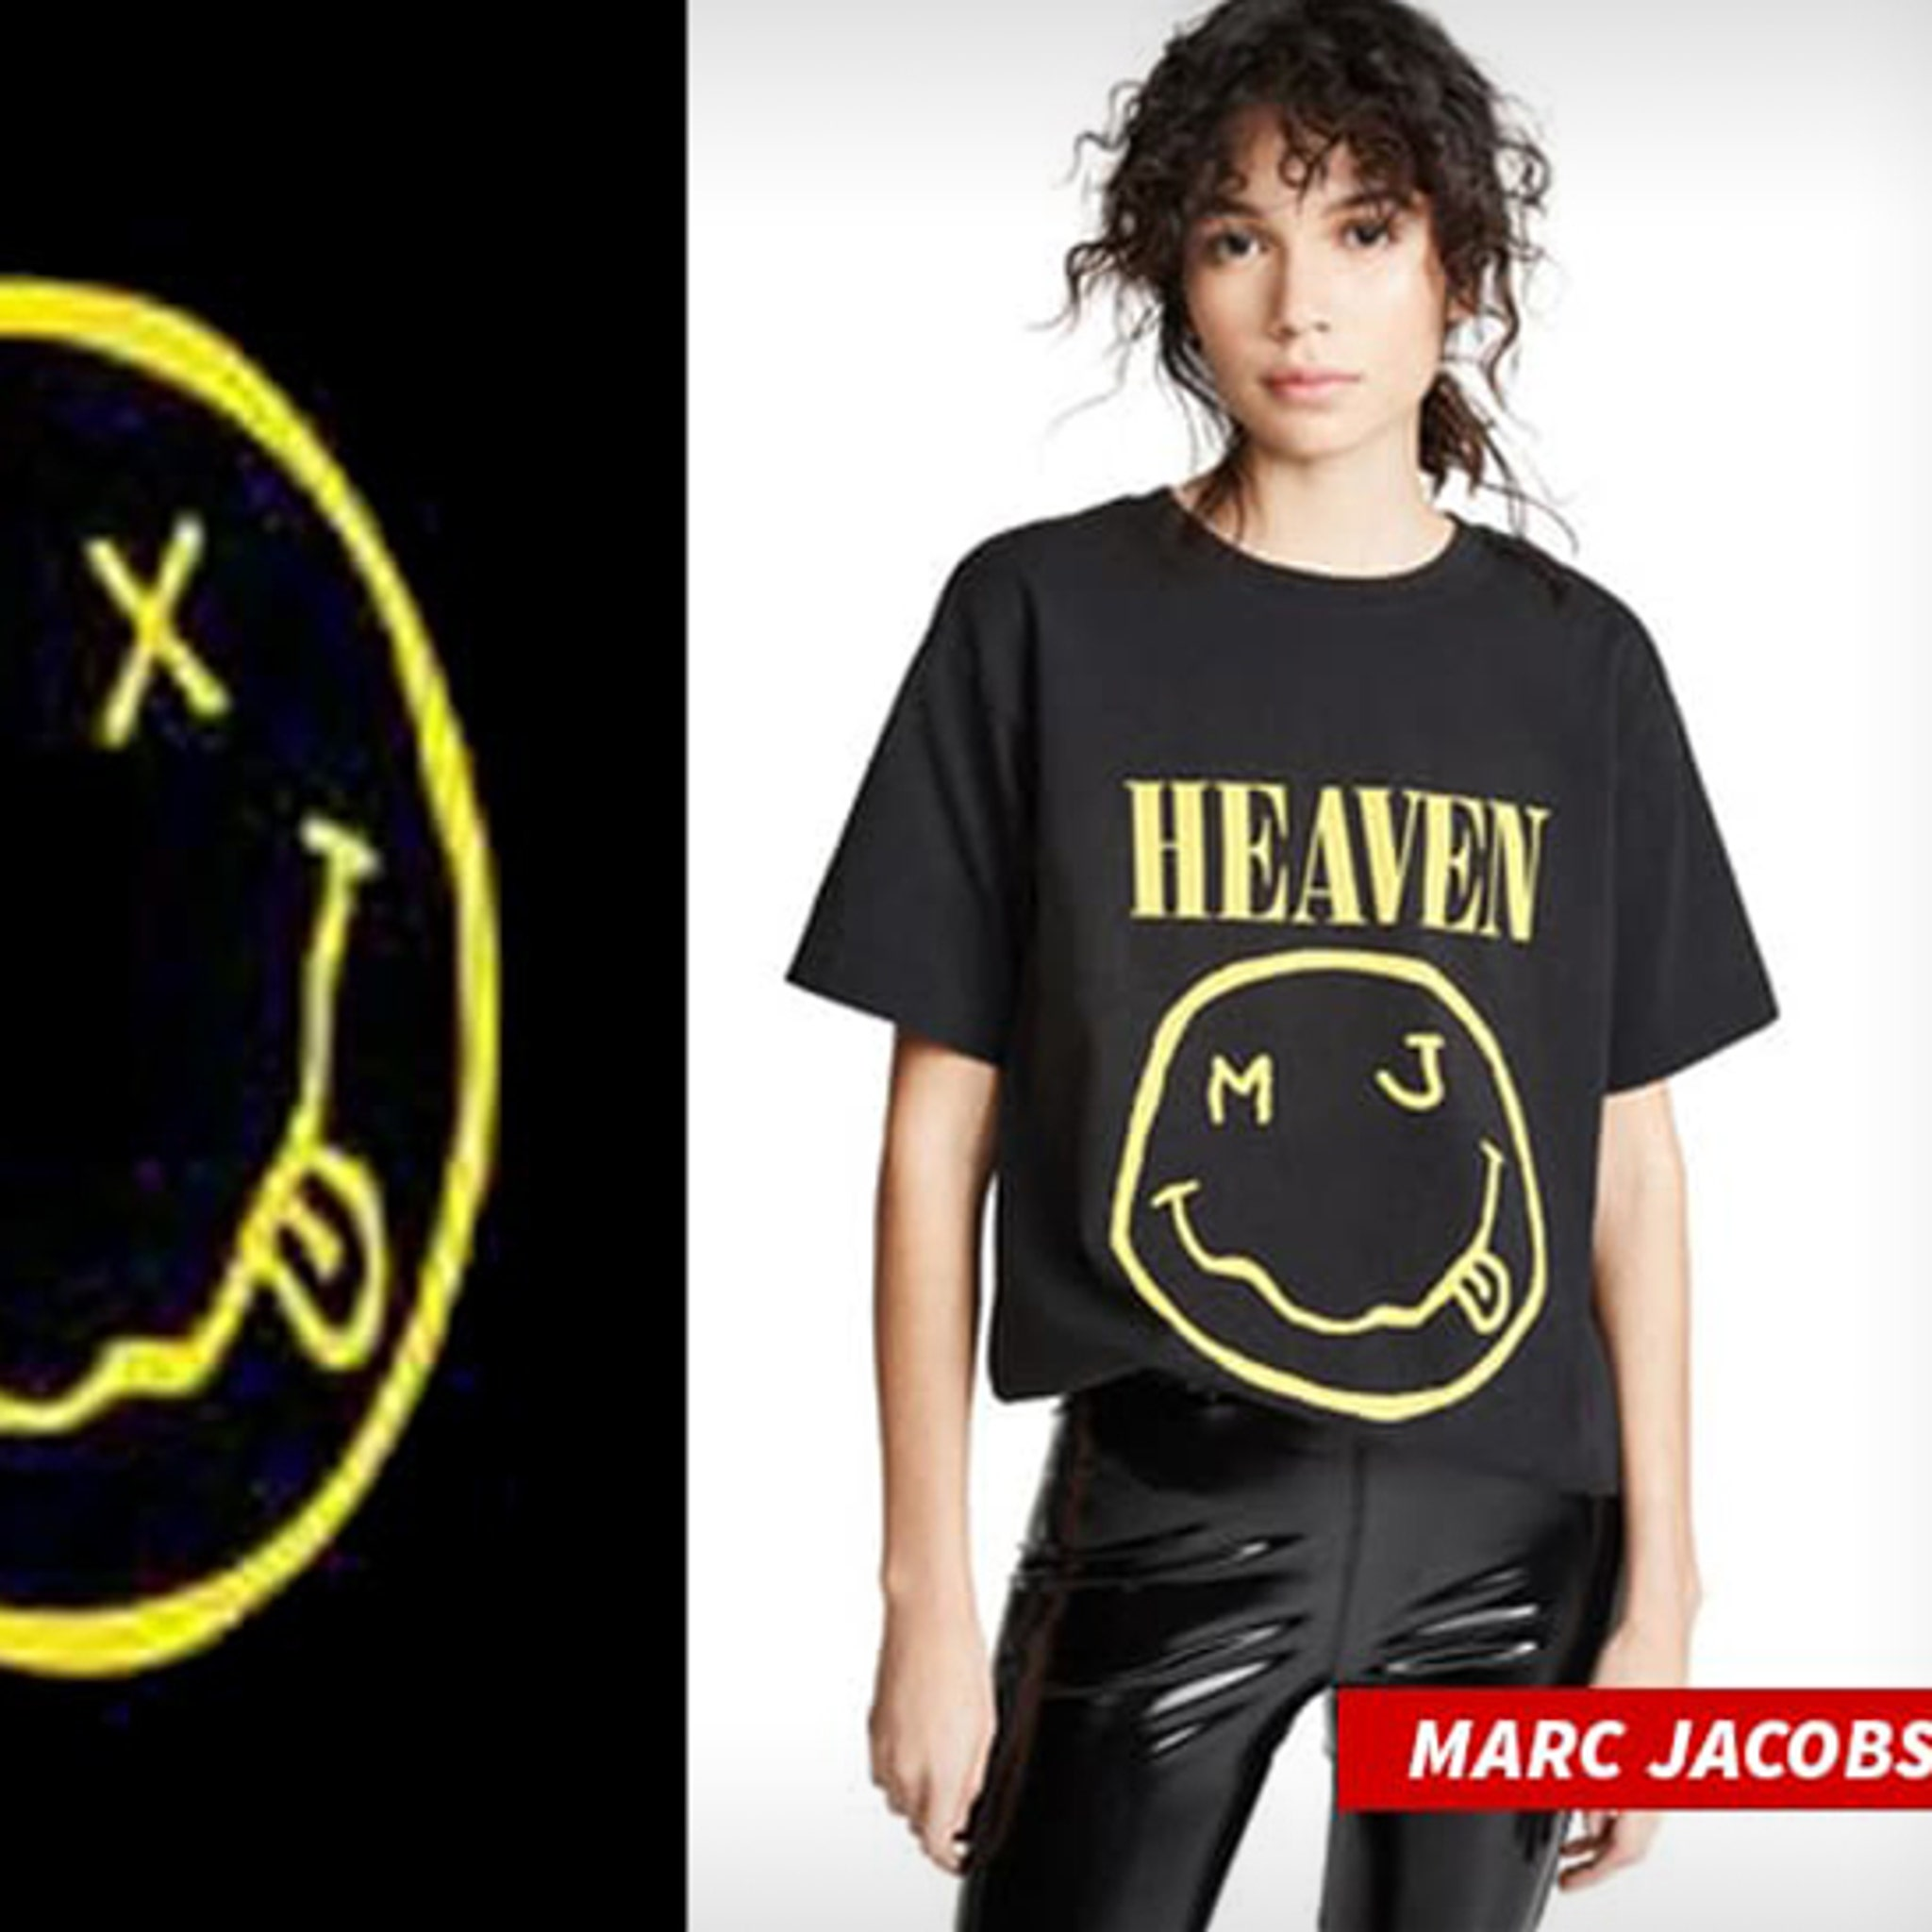 f5ca27b657a29 Nirvana Sues Marc Jacobs for Stealing Smiley Face Design